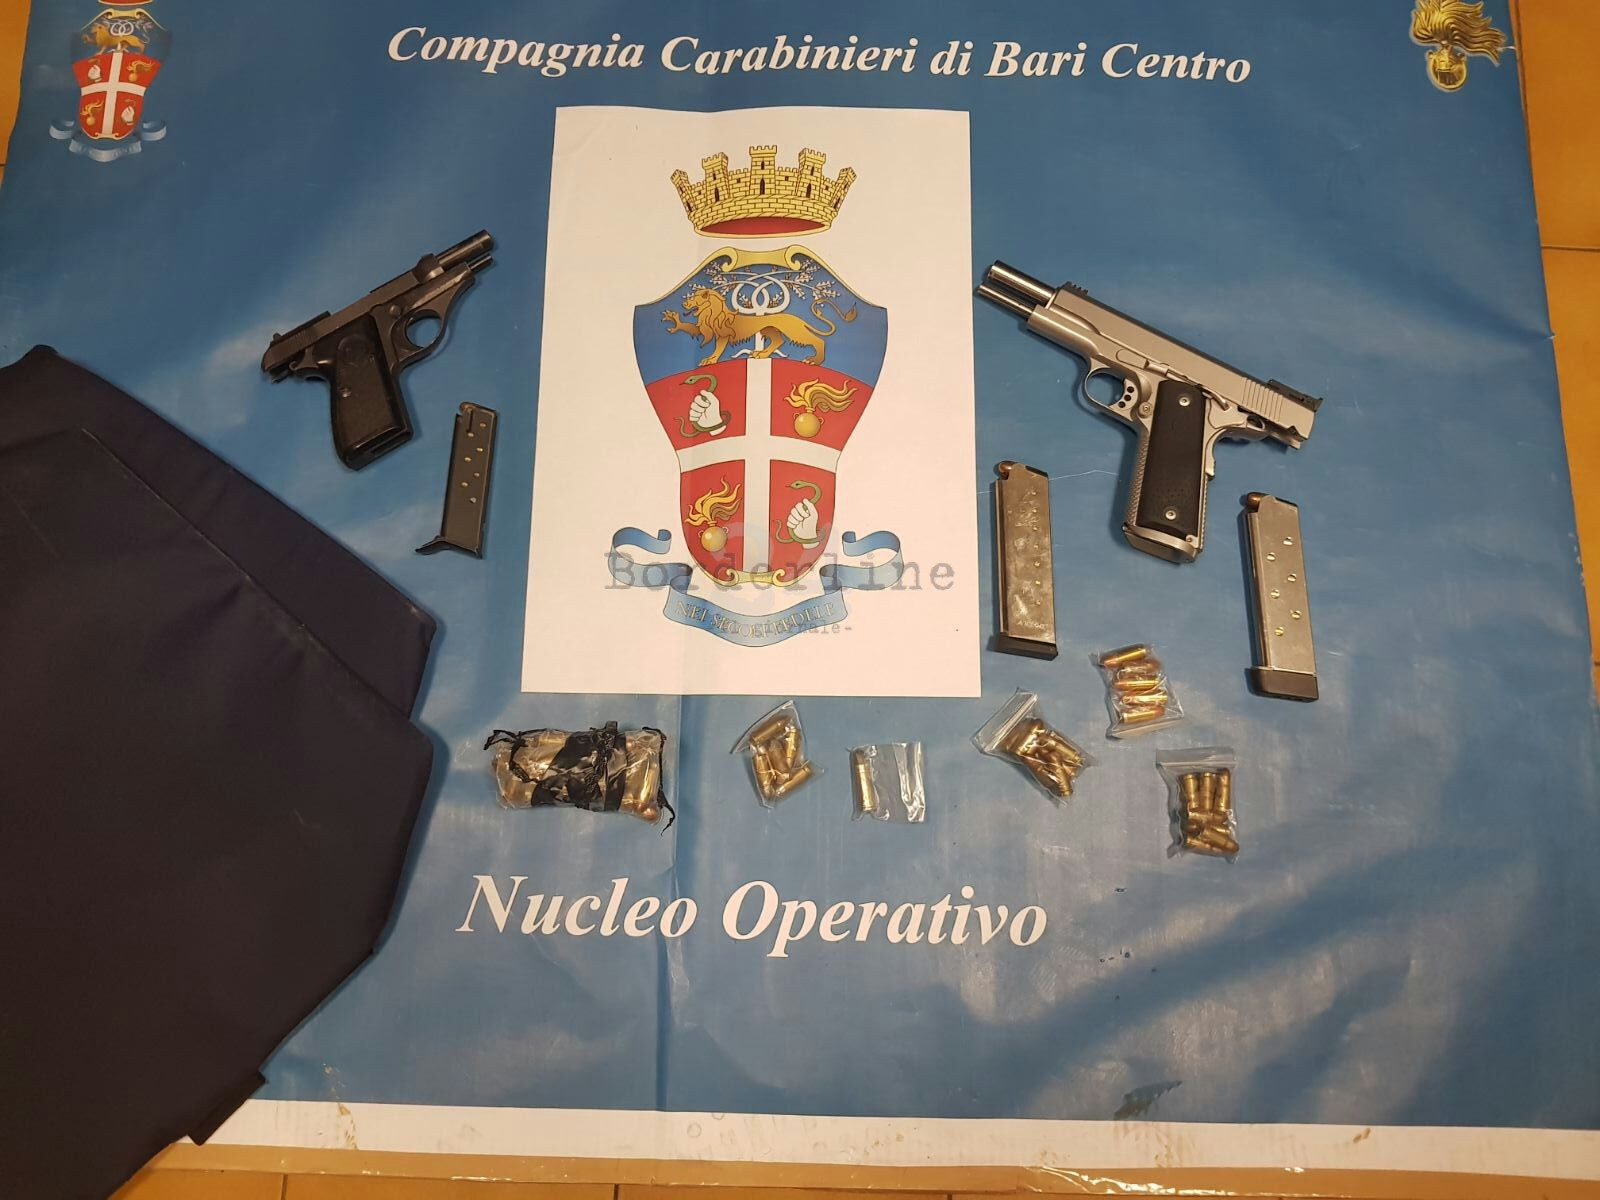 Bari, i carabinieri interrompono summit criminale a Japigia: 2 pistole sequestrate